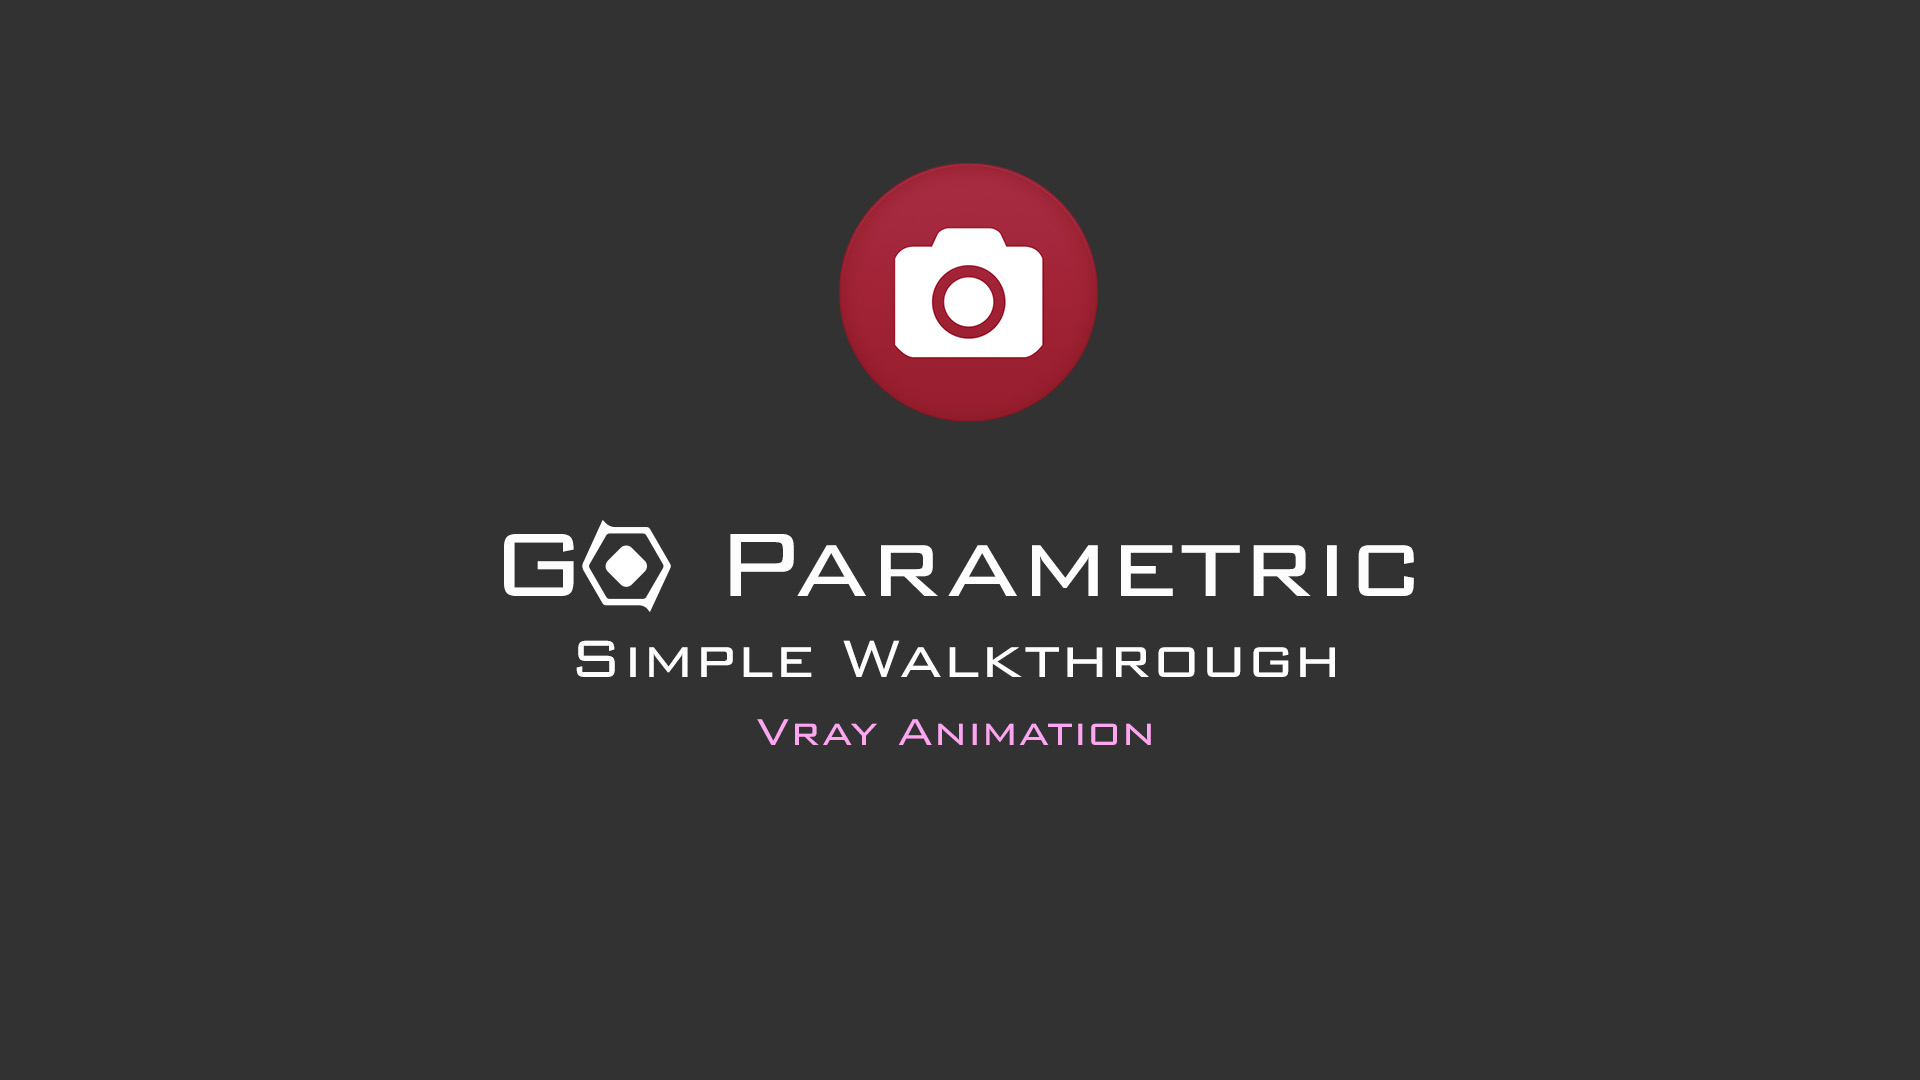 Go Parametric_Simple_Walkthrough.jpg